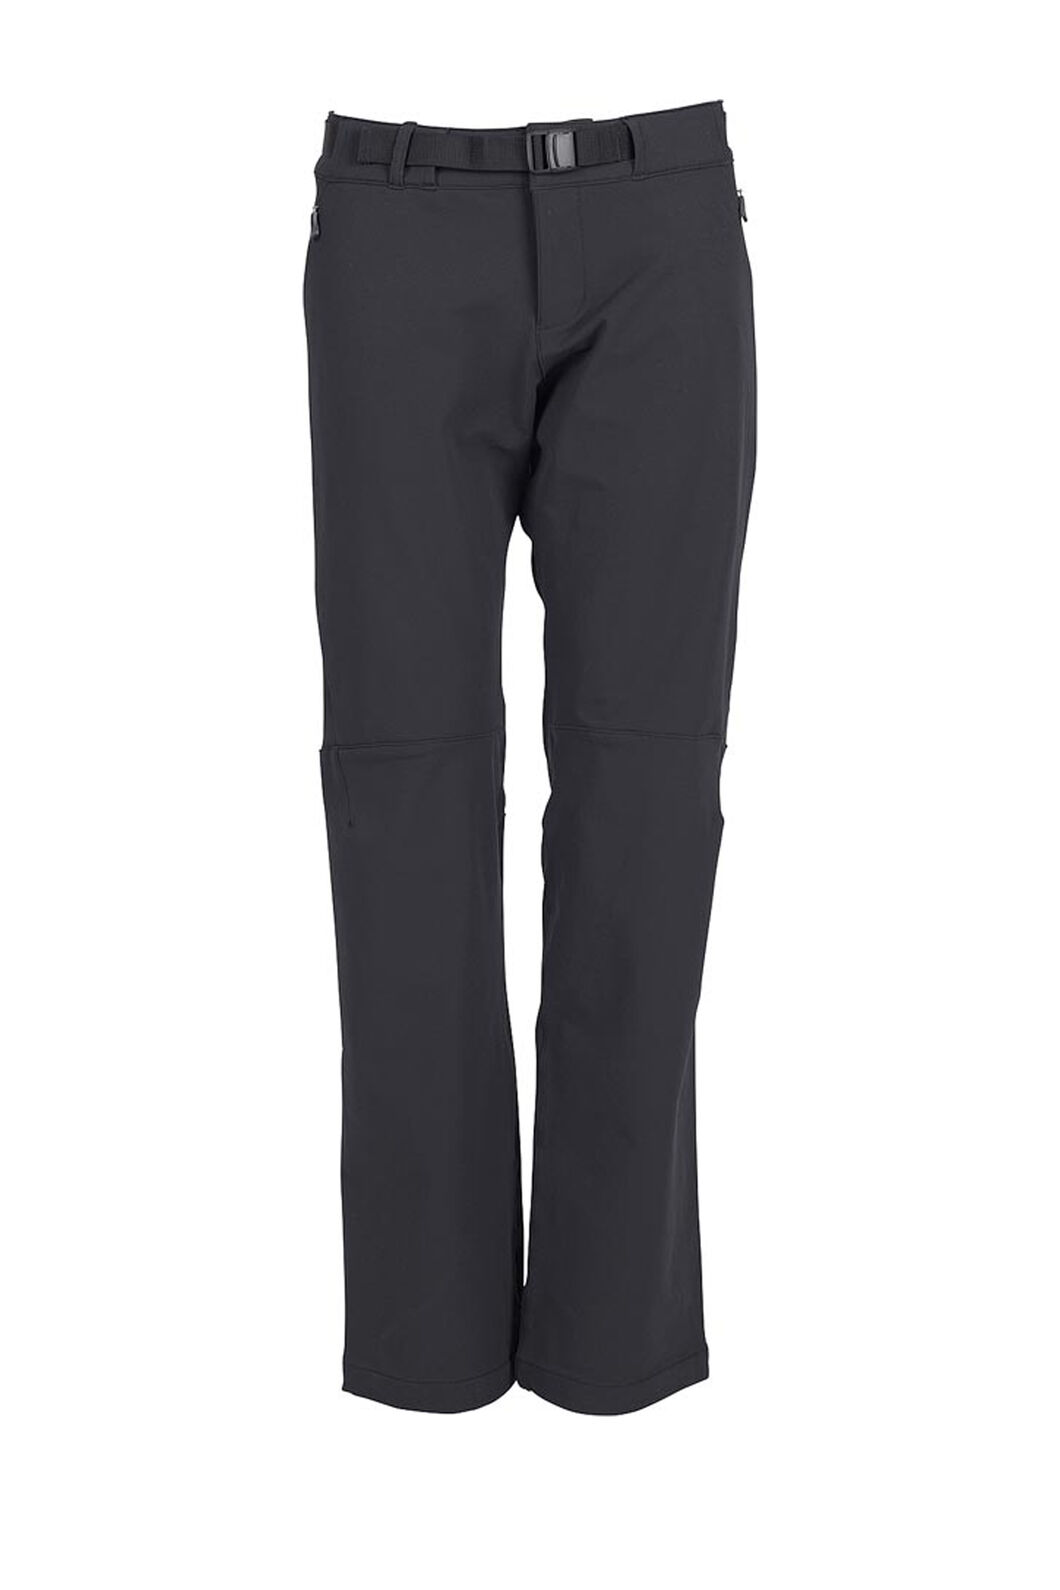 Macpac Nemesis Softshell Pants - Women's, Black, hi-res